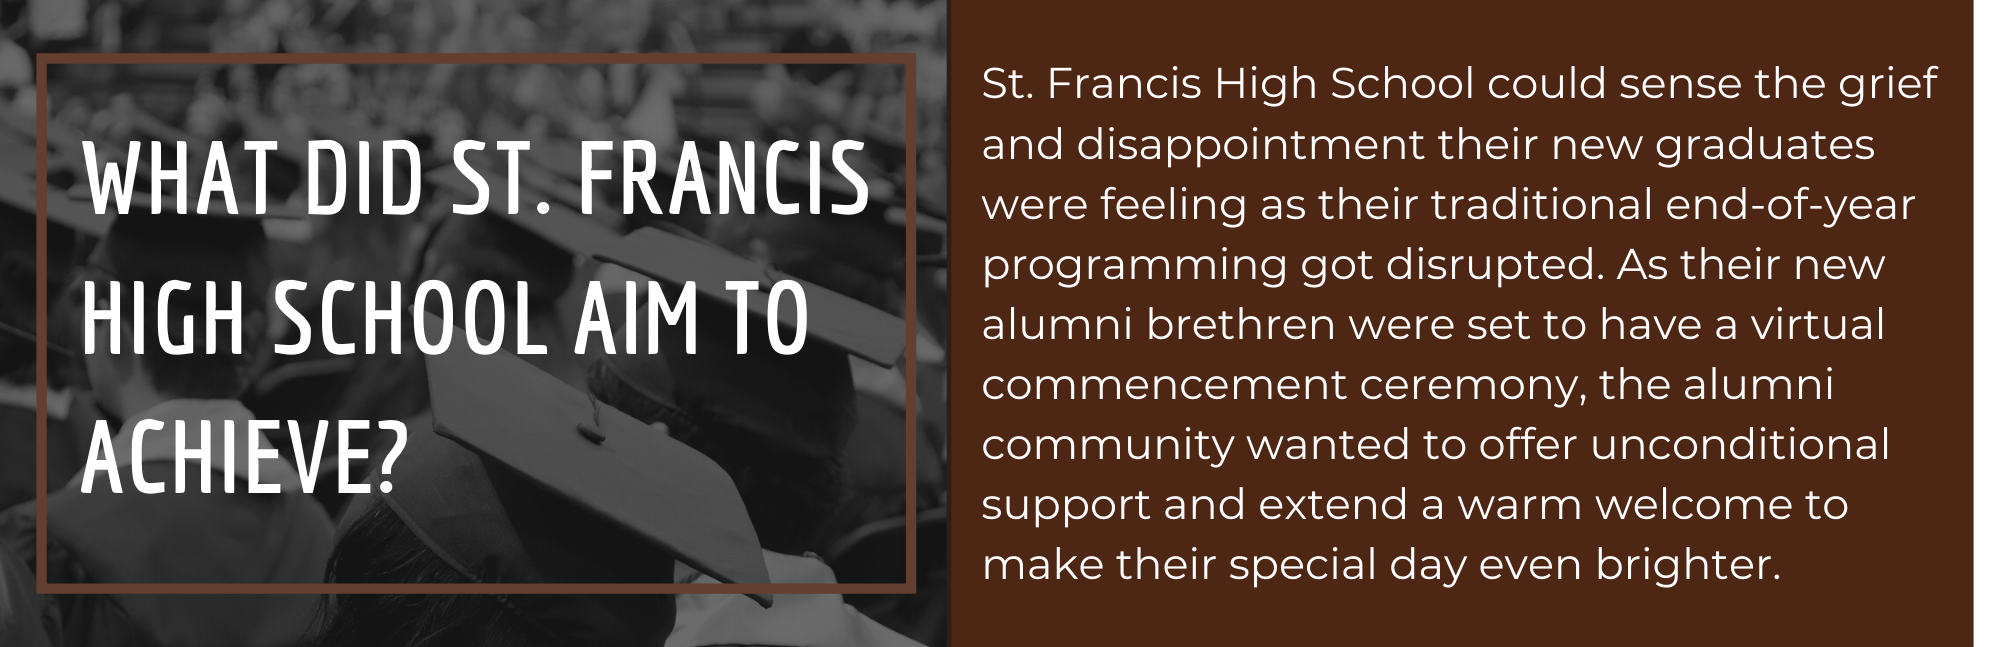 St. Francis High School welcomed Class of 2020 alumni